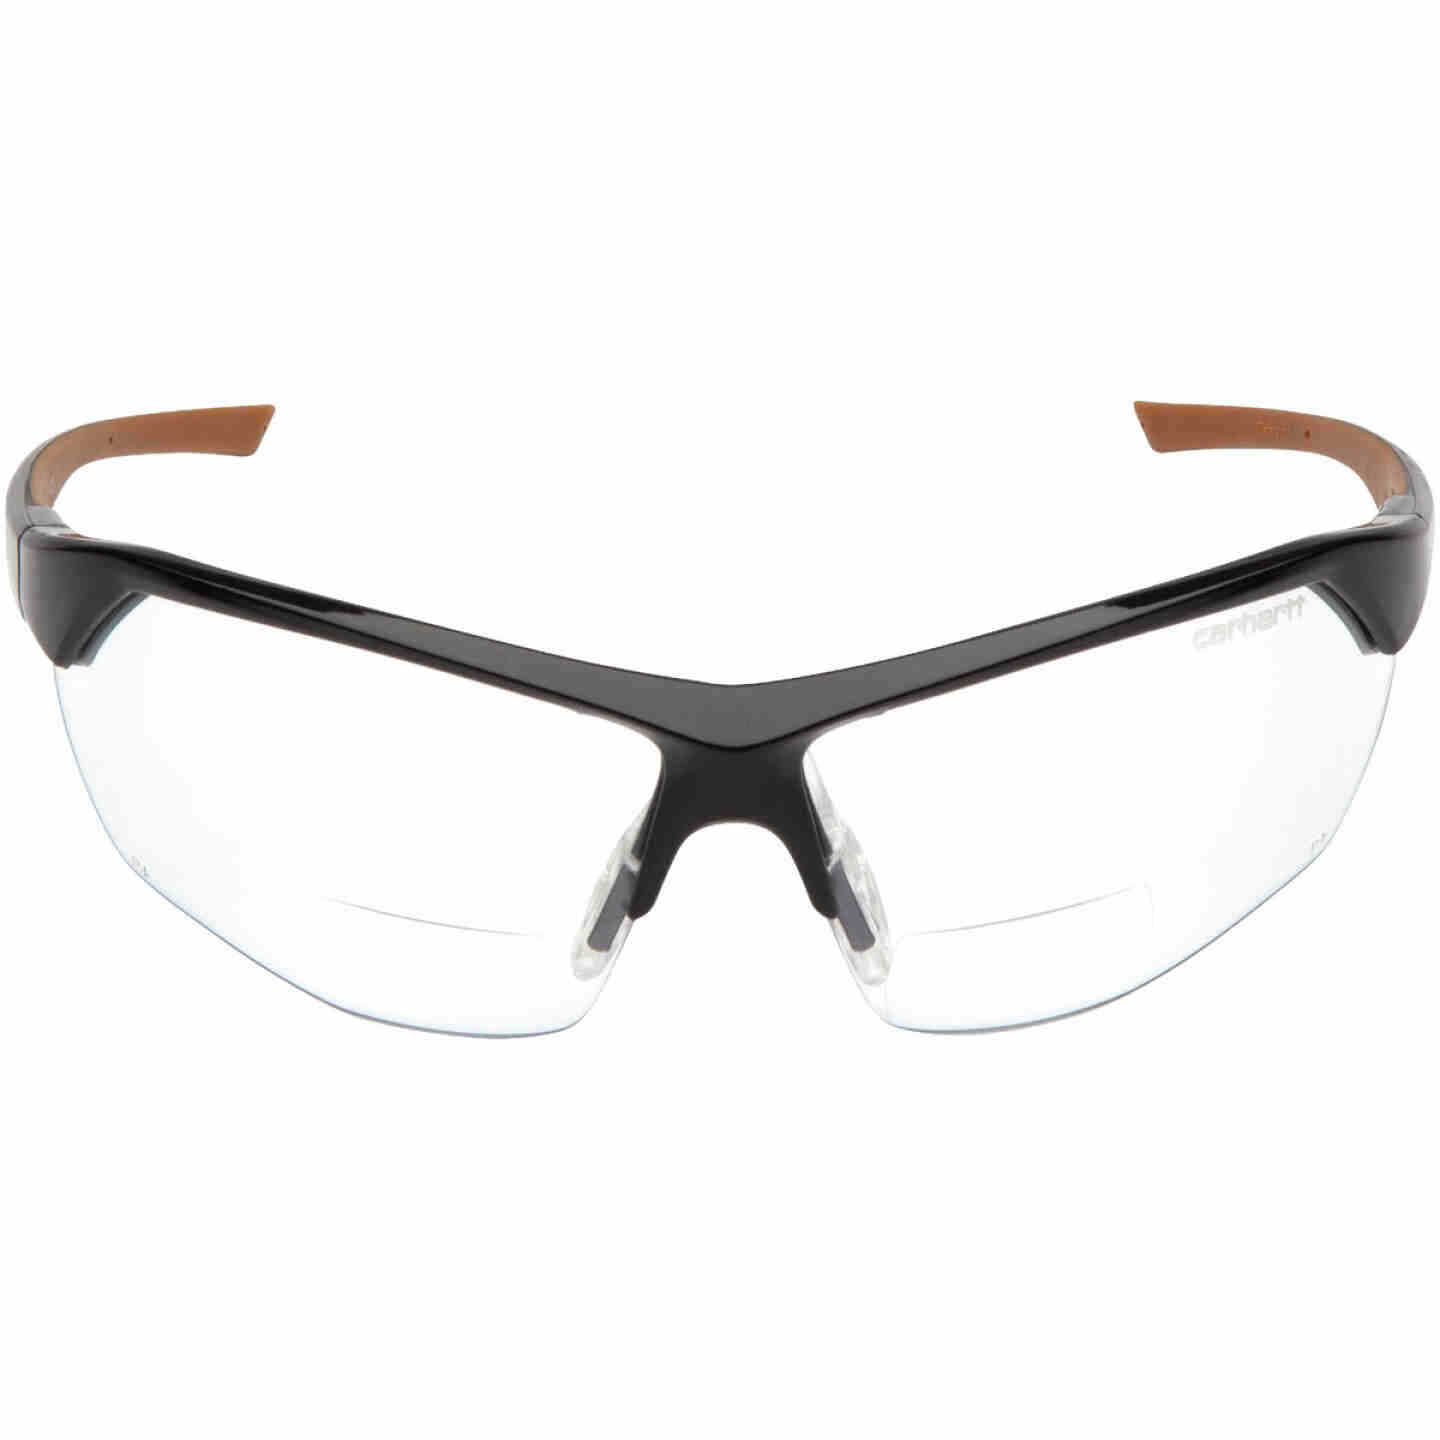 Carhartt Braswell Black Frame Reader Safety Glasses with Clear Anti-Fog Lenses, 1.5 Diopter Image 2